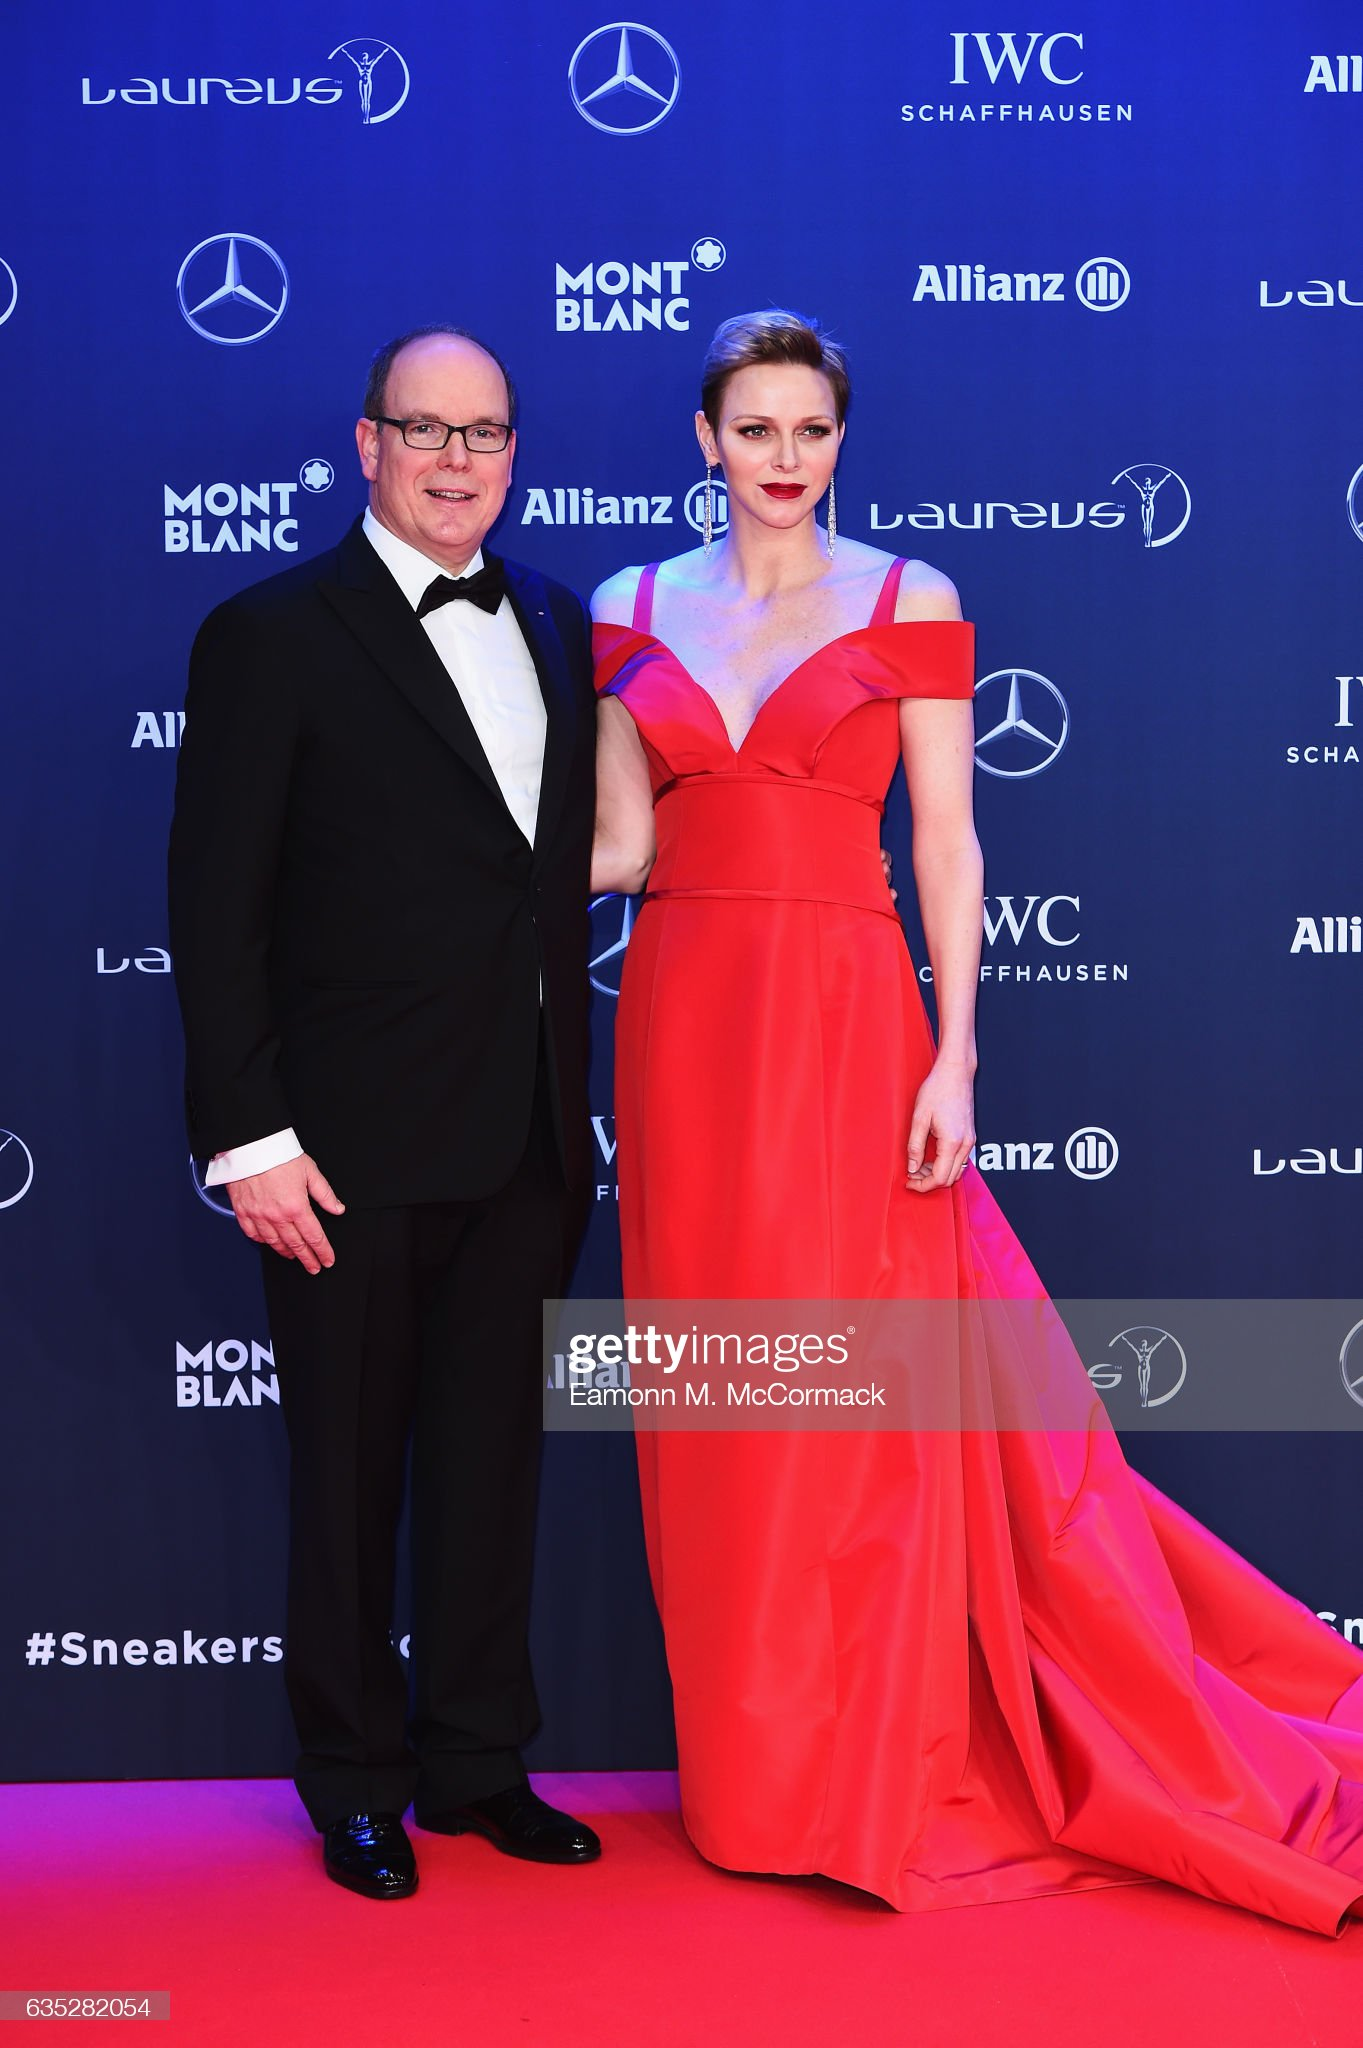 Red Carpet - 2017 Laureus World Sports Awards - Monaco : News Photo